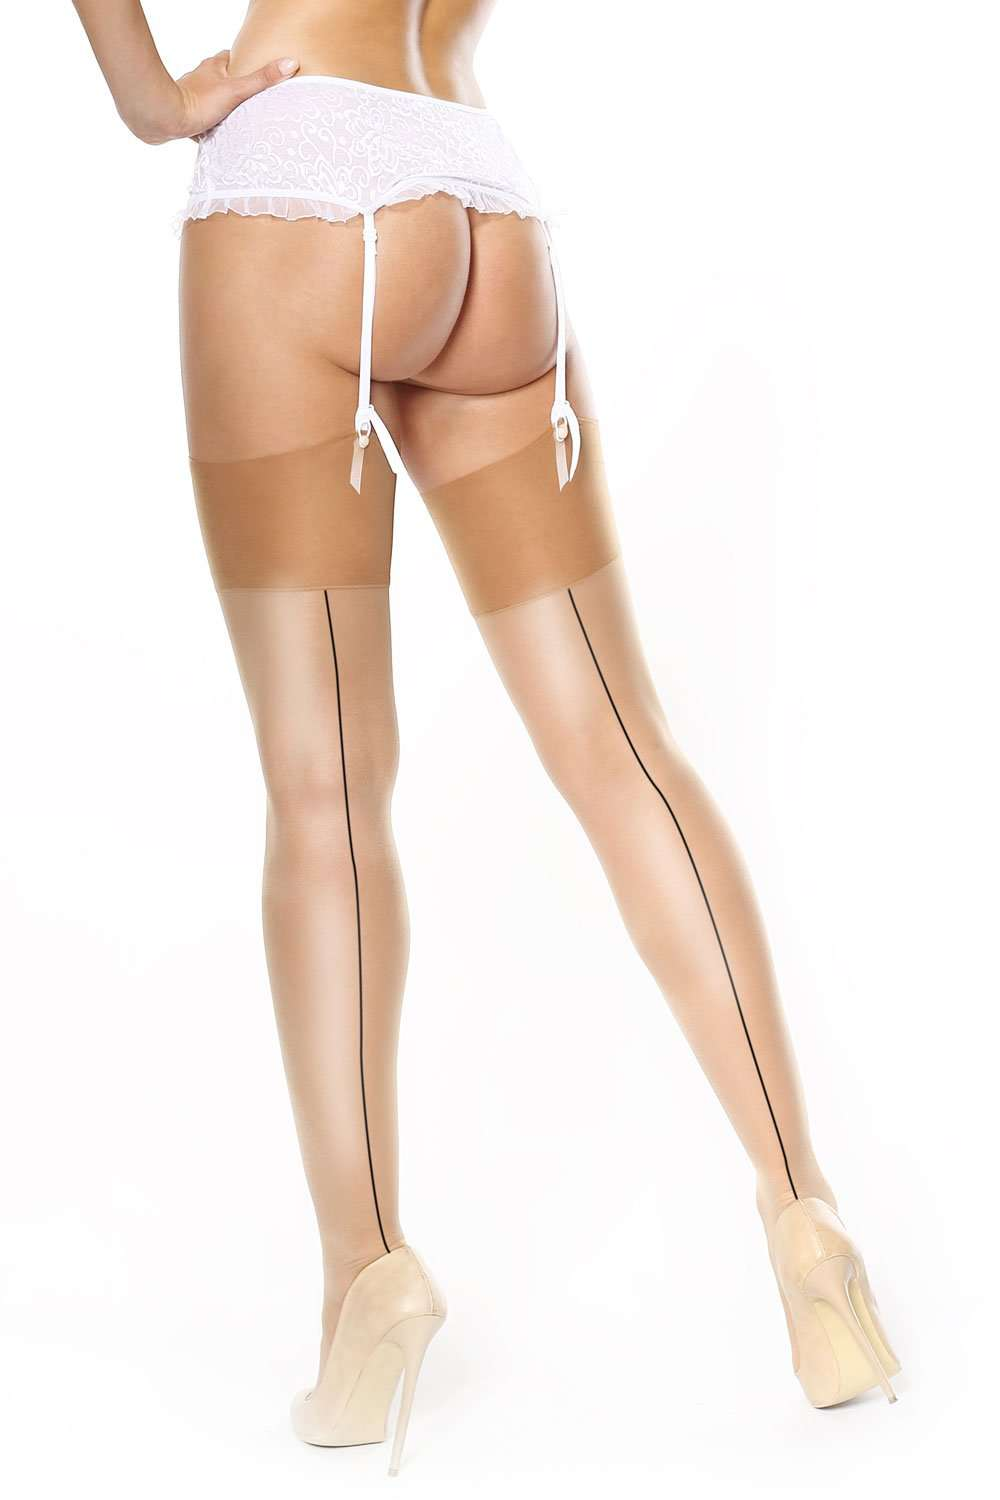 missO Back Seamed Stockings 15 Denier